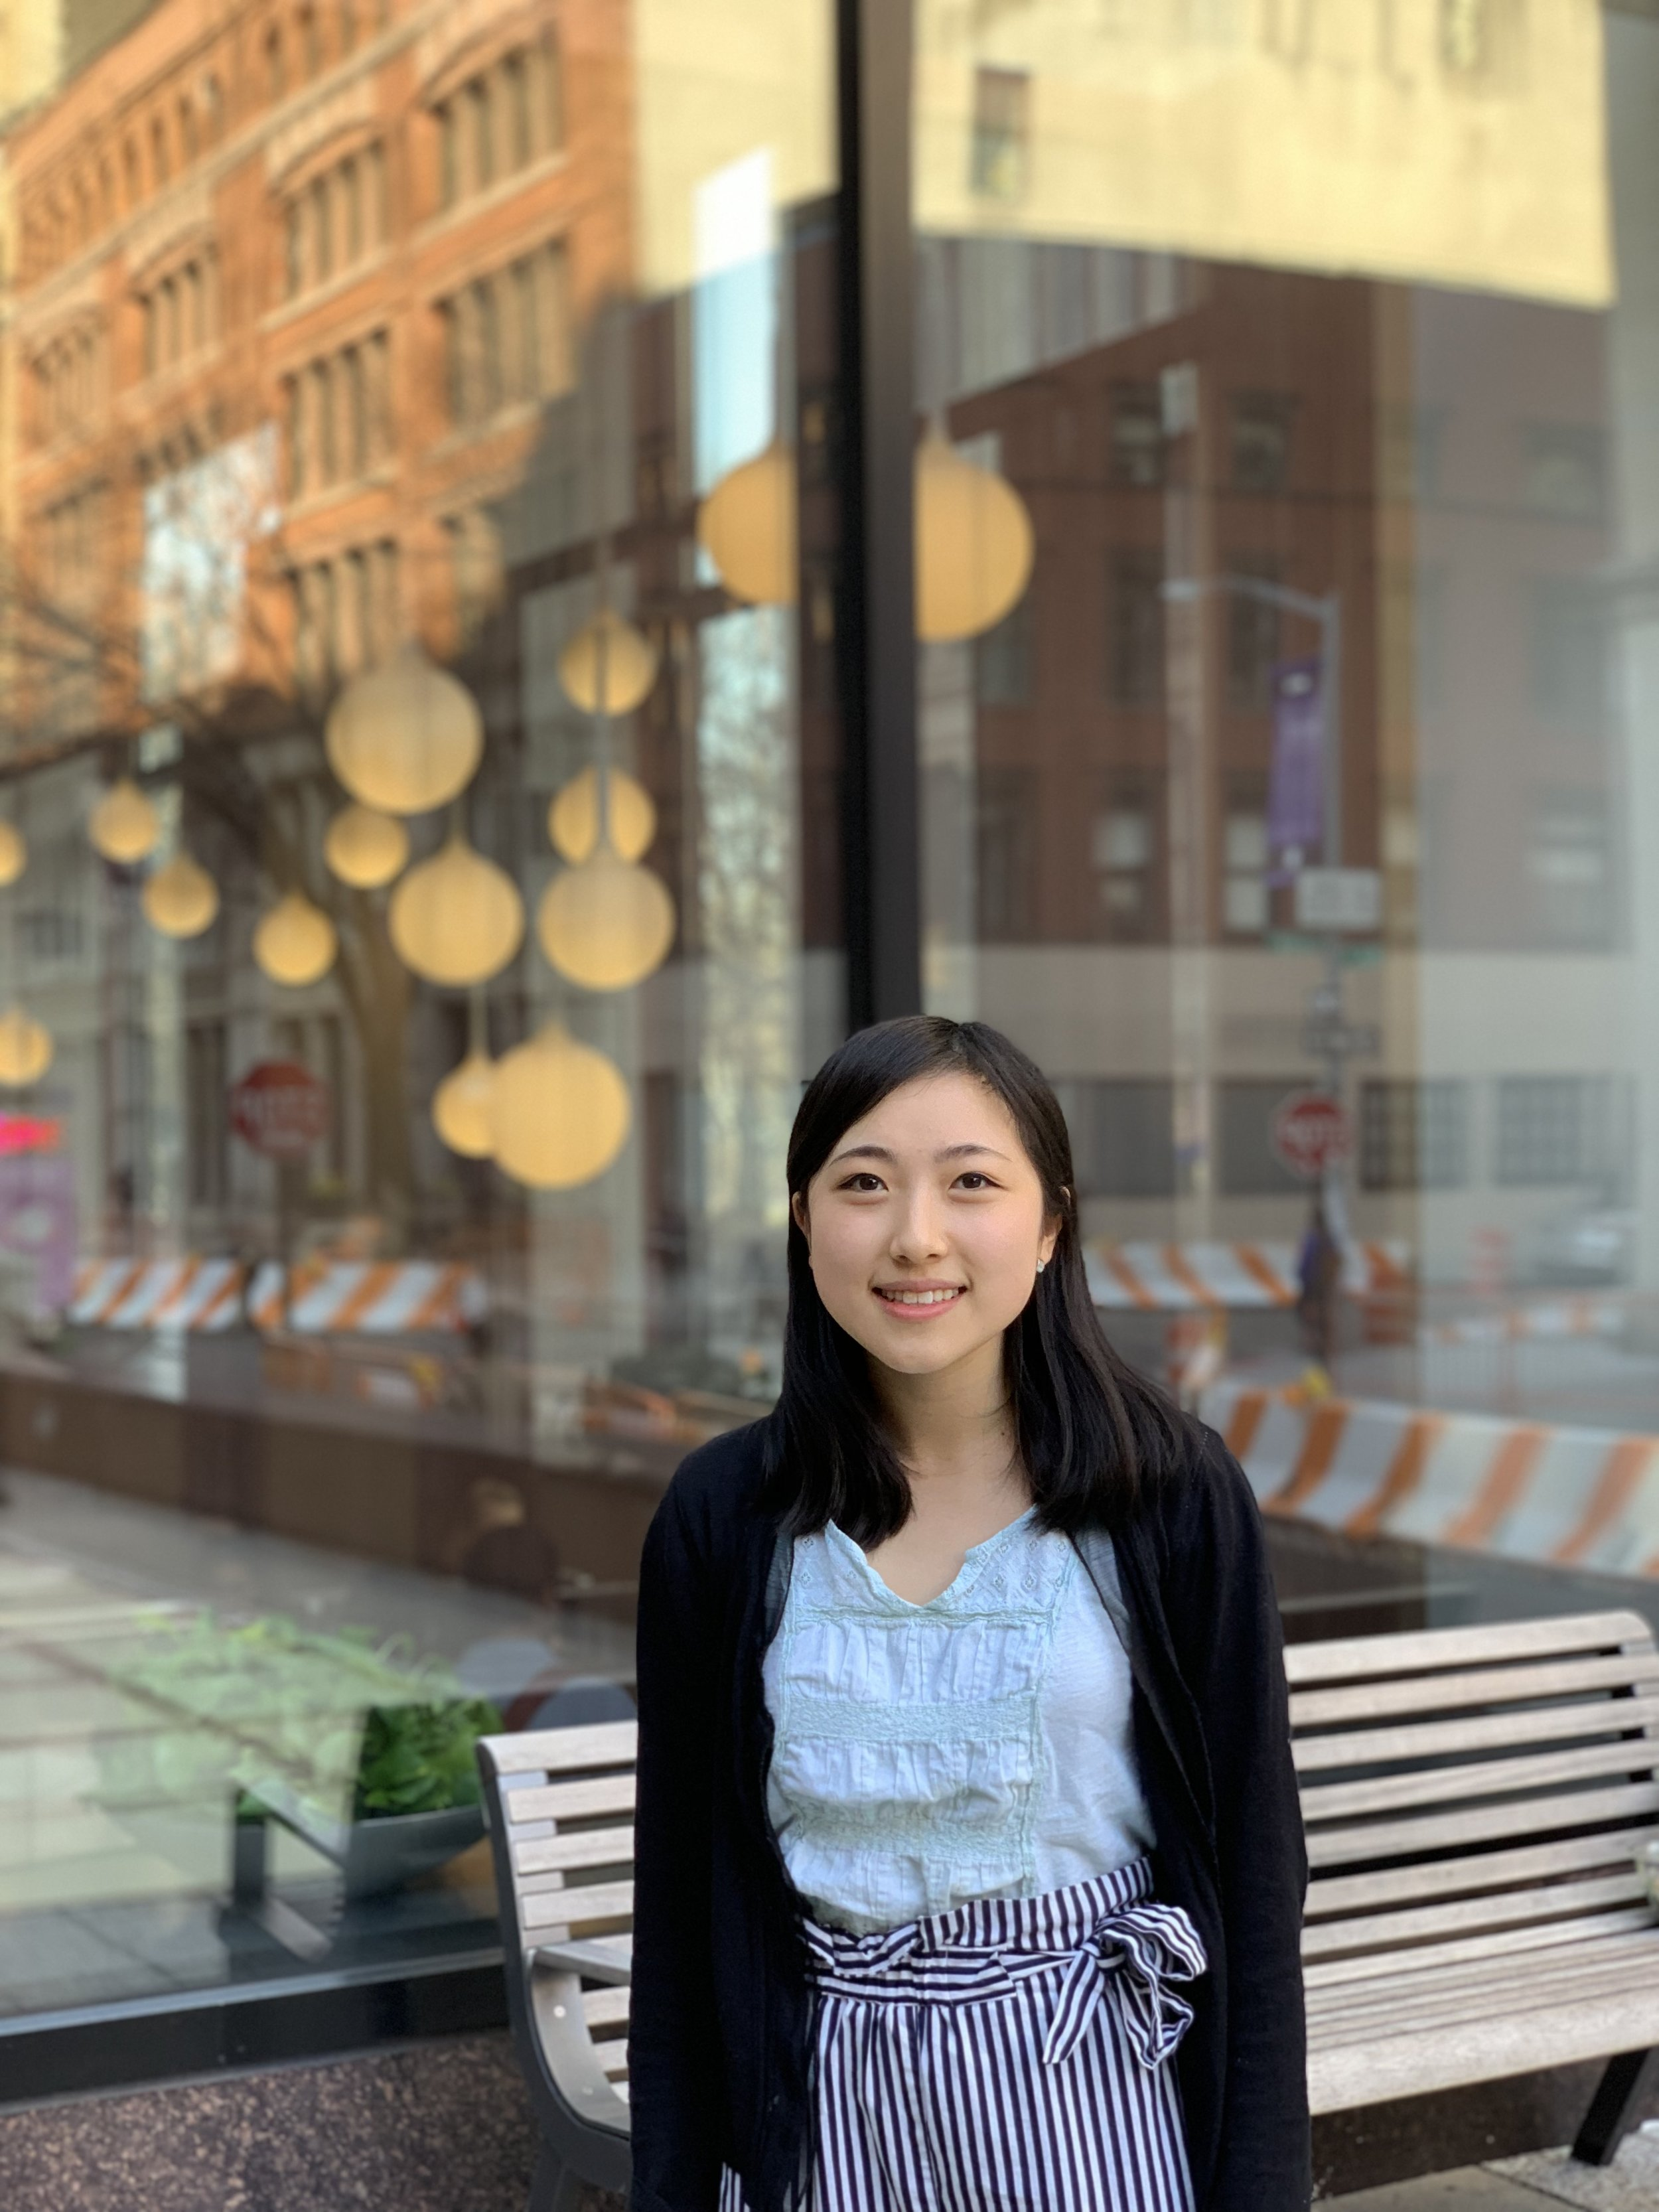 Jada Yang    Long Short Analyst   Jada Yang is a sophomore concentrating in finance and sustainable business with a double major in art history. In her free time, she enjoys dancing, choreographing, watching standup and sketch comedy shows, and FaceTiming her cat, Cookie.